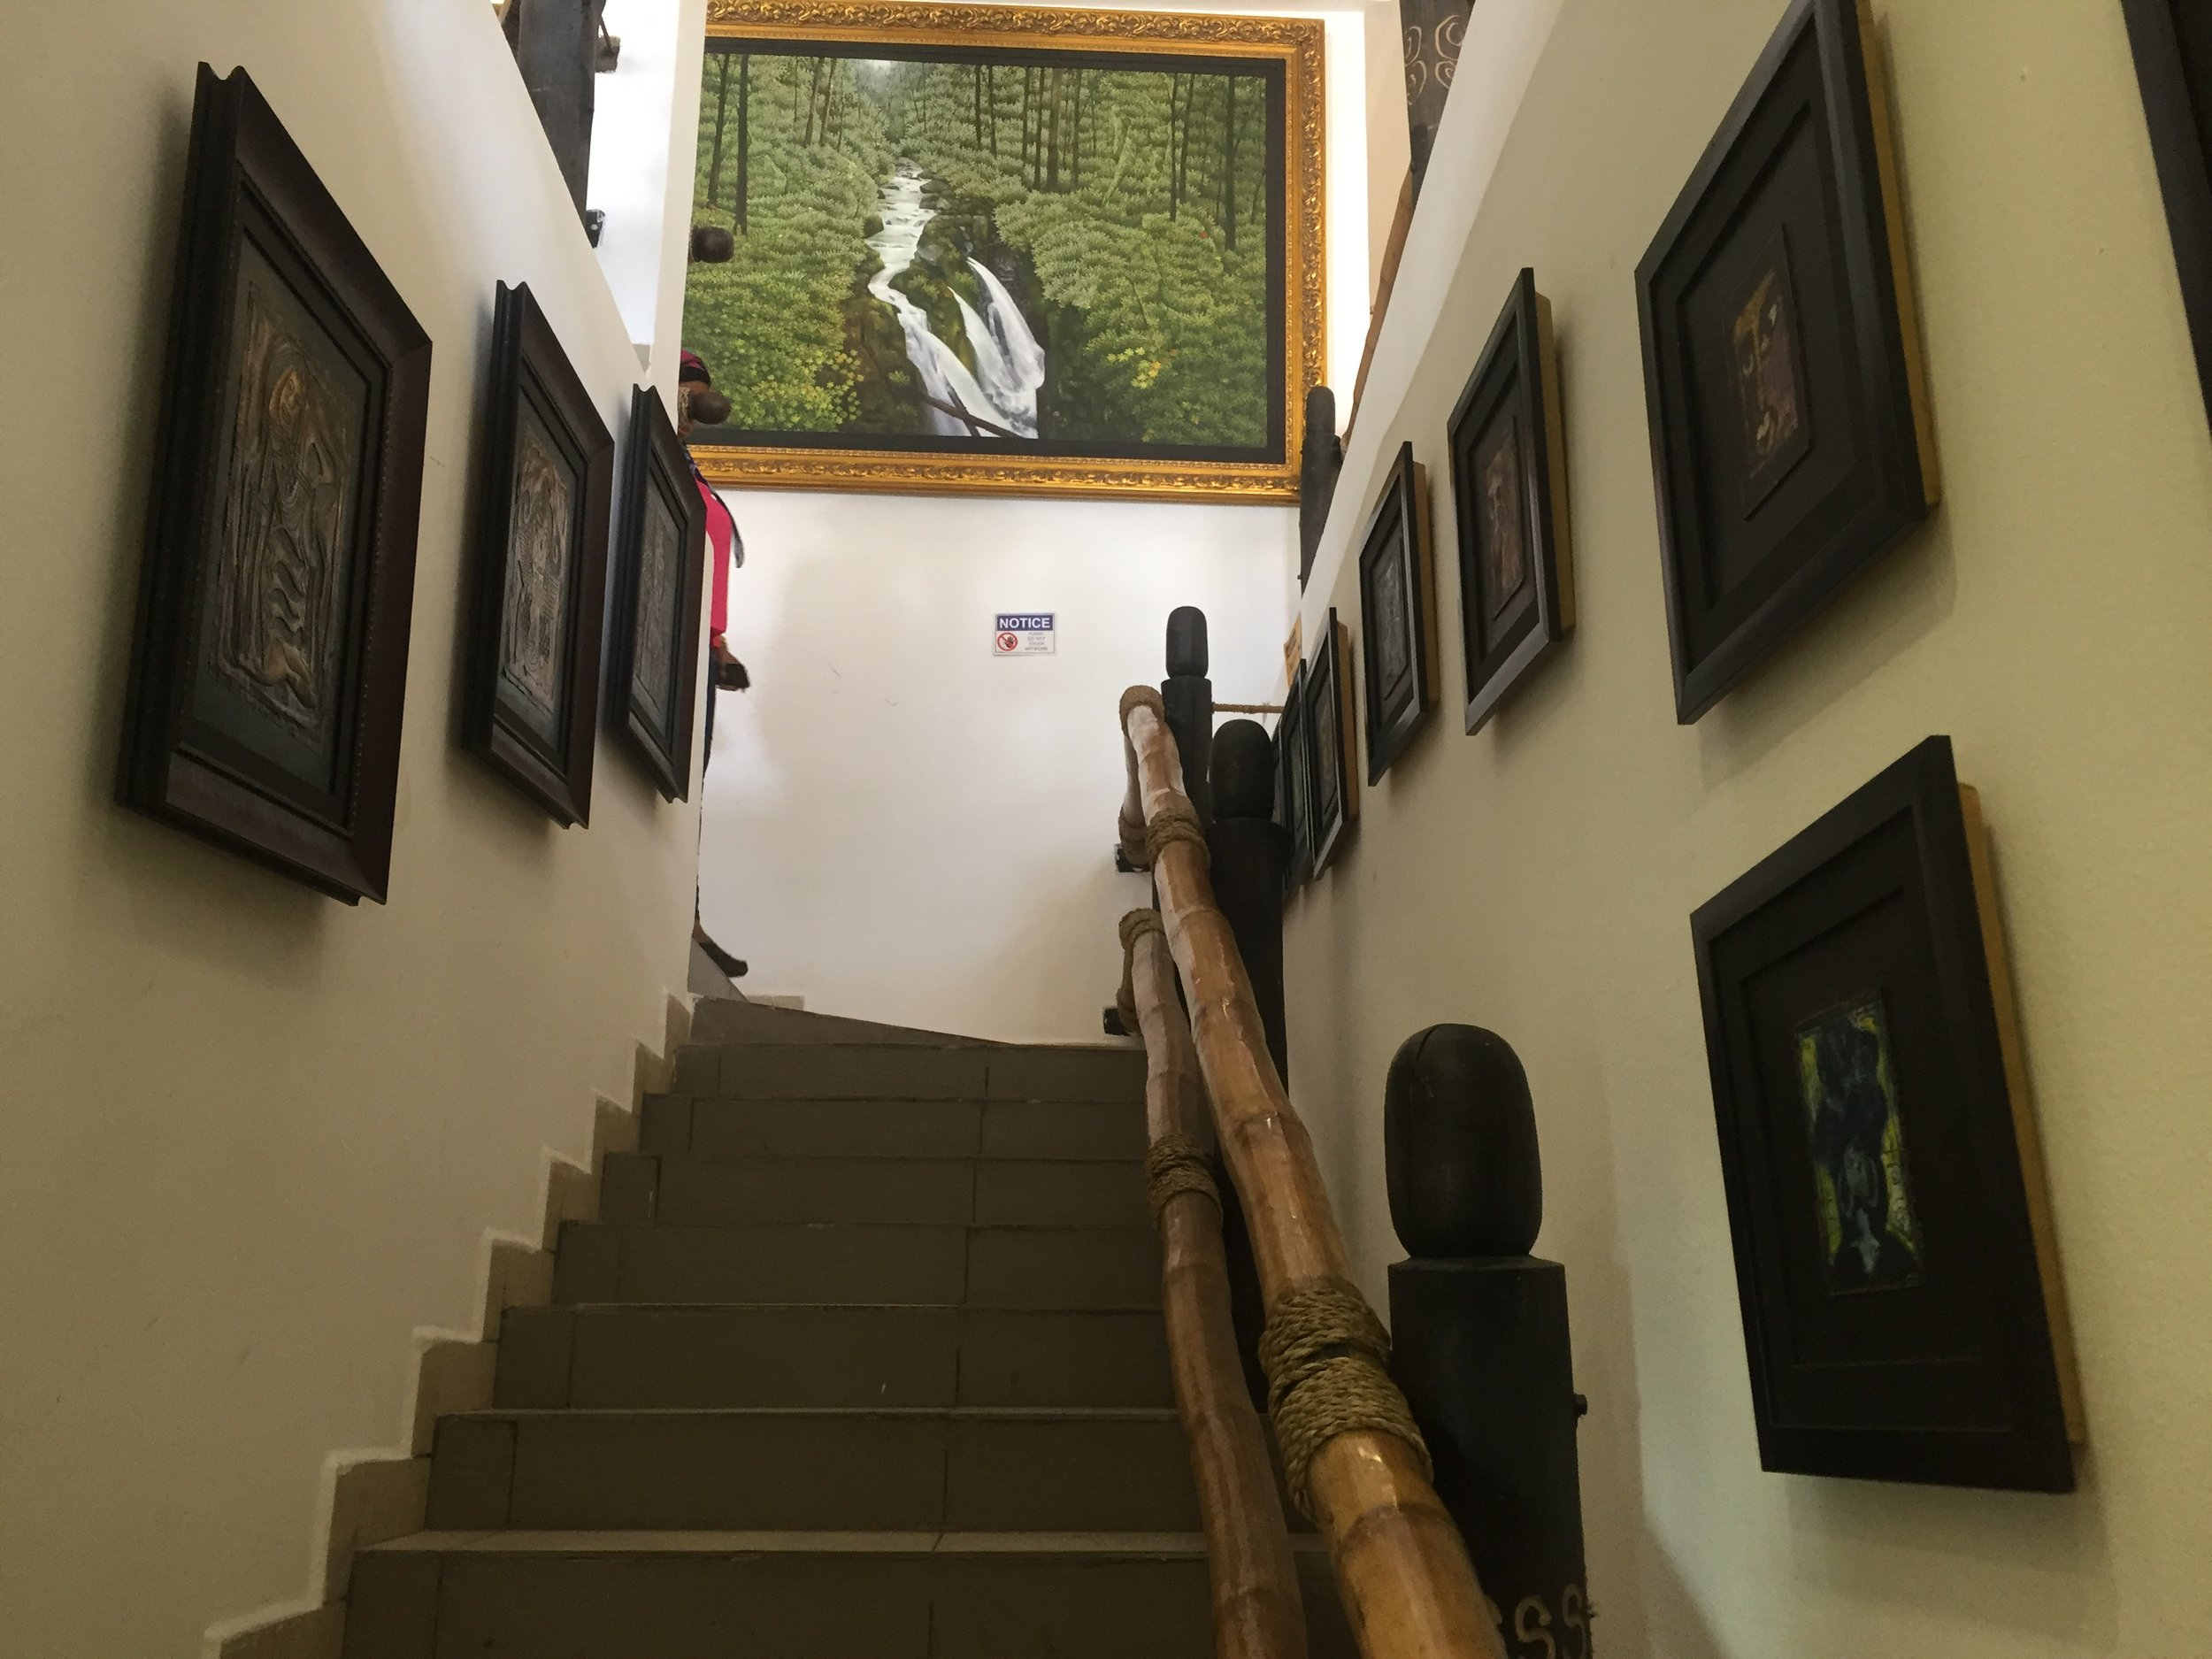 The stairway upsides, filled with art works from Bruce Onobrakpeya